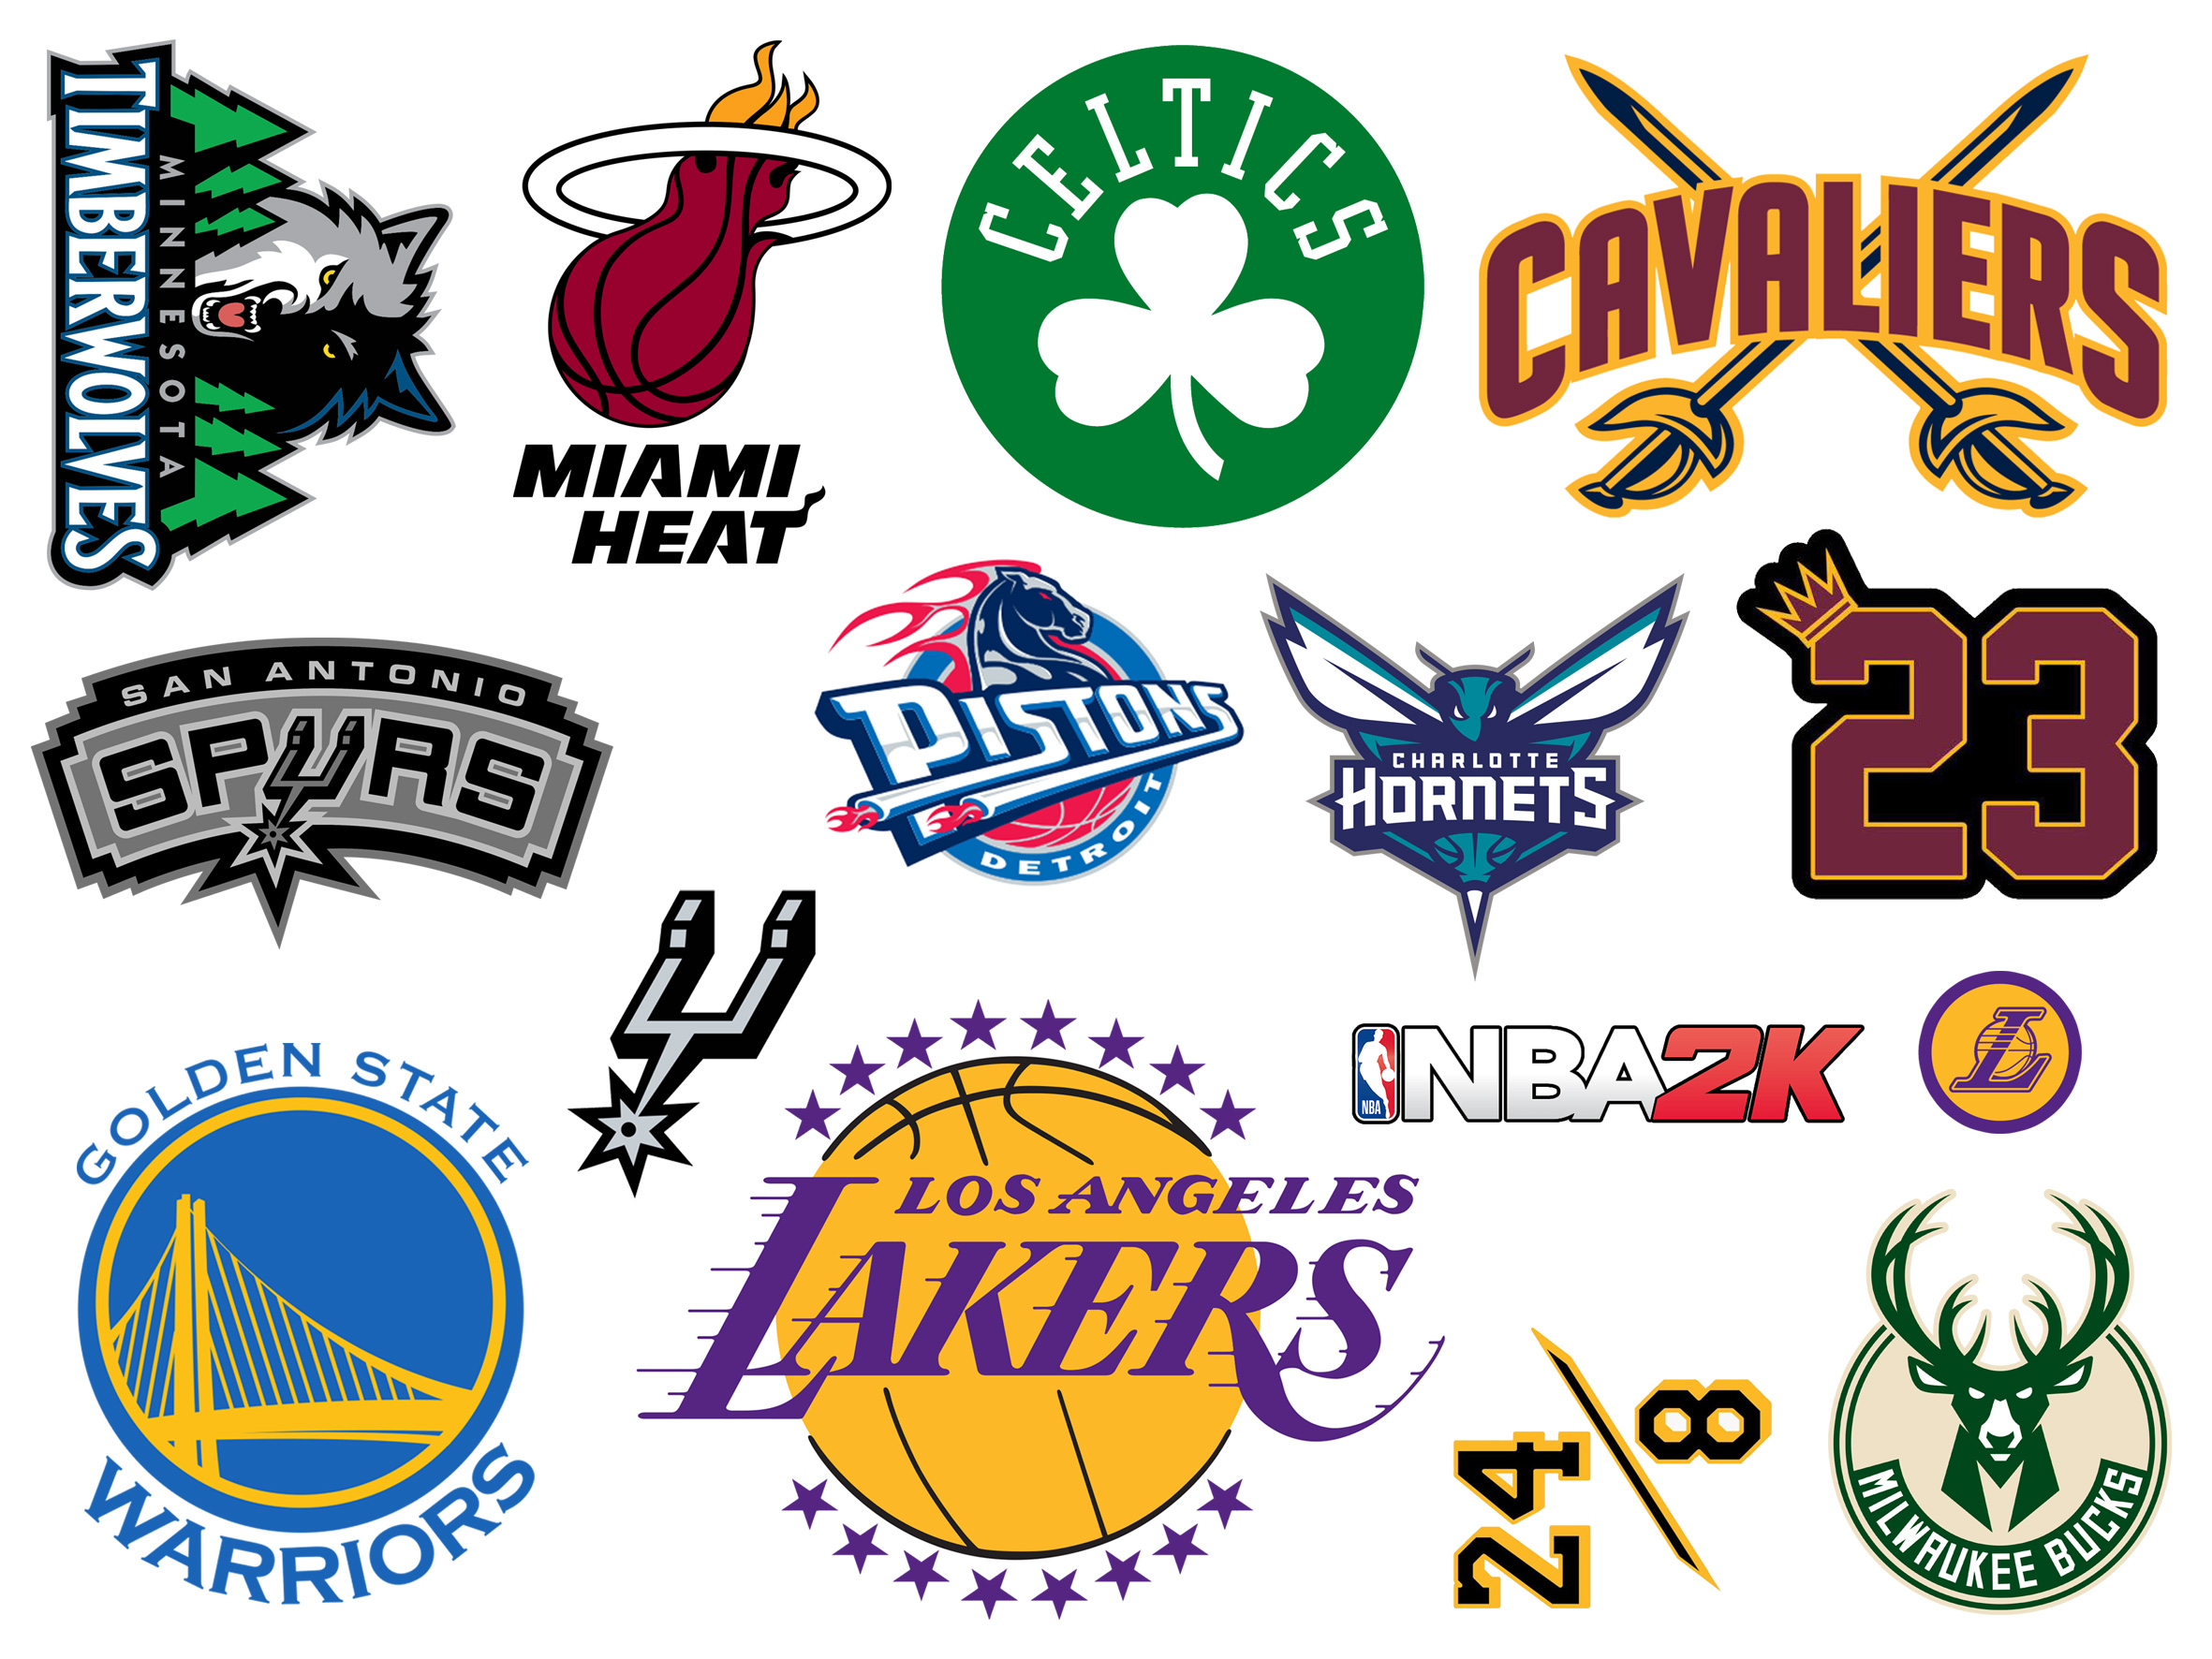 2000\'s NBA Teams Logos Vinyl Sticker Pack (Vintage Basketball Stickers for  Phones, Laptops, Motorcycles and more).